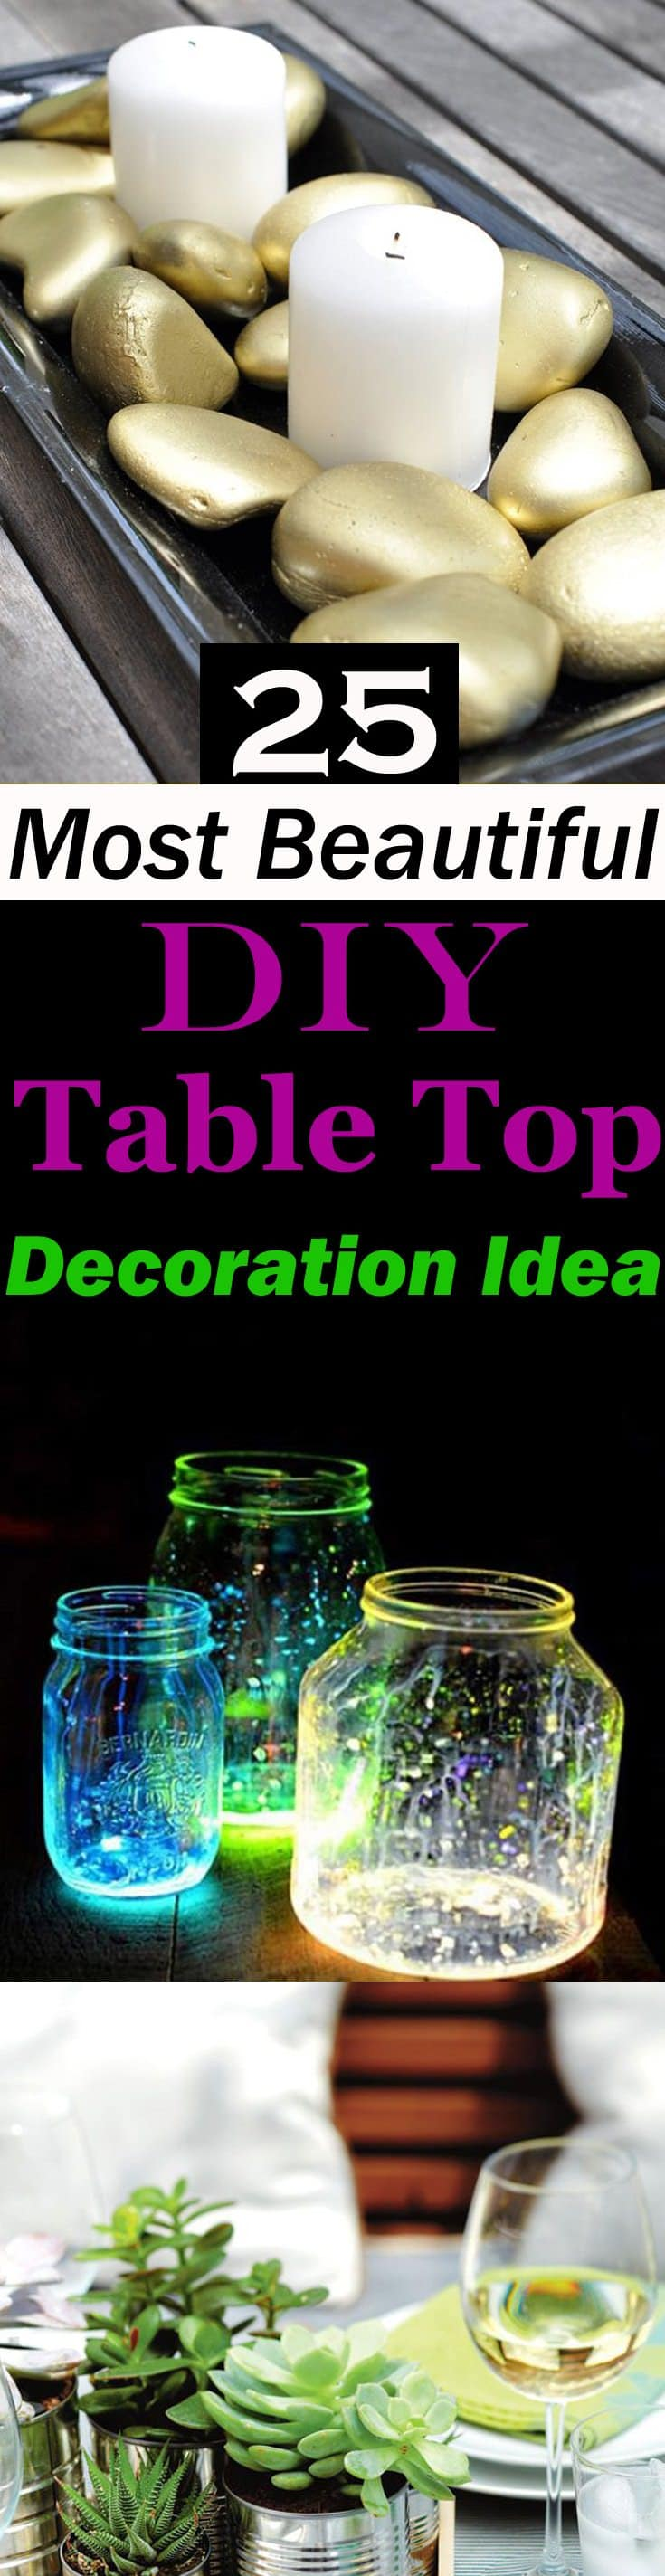 25 most beautiful diy table top